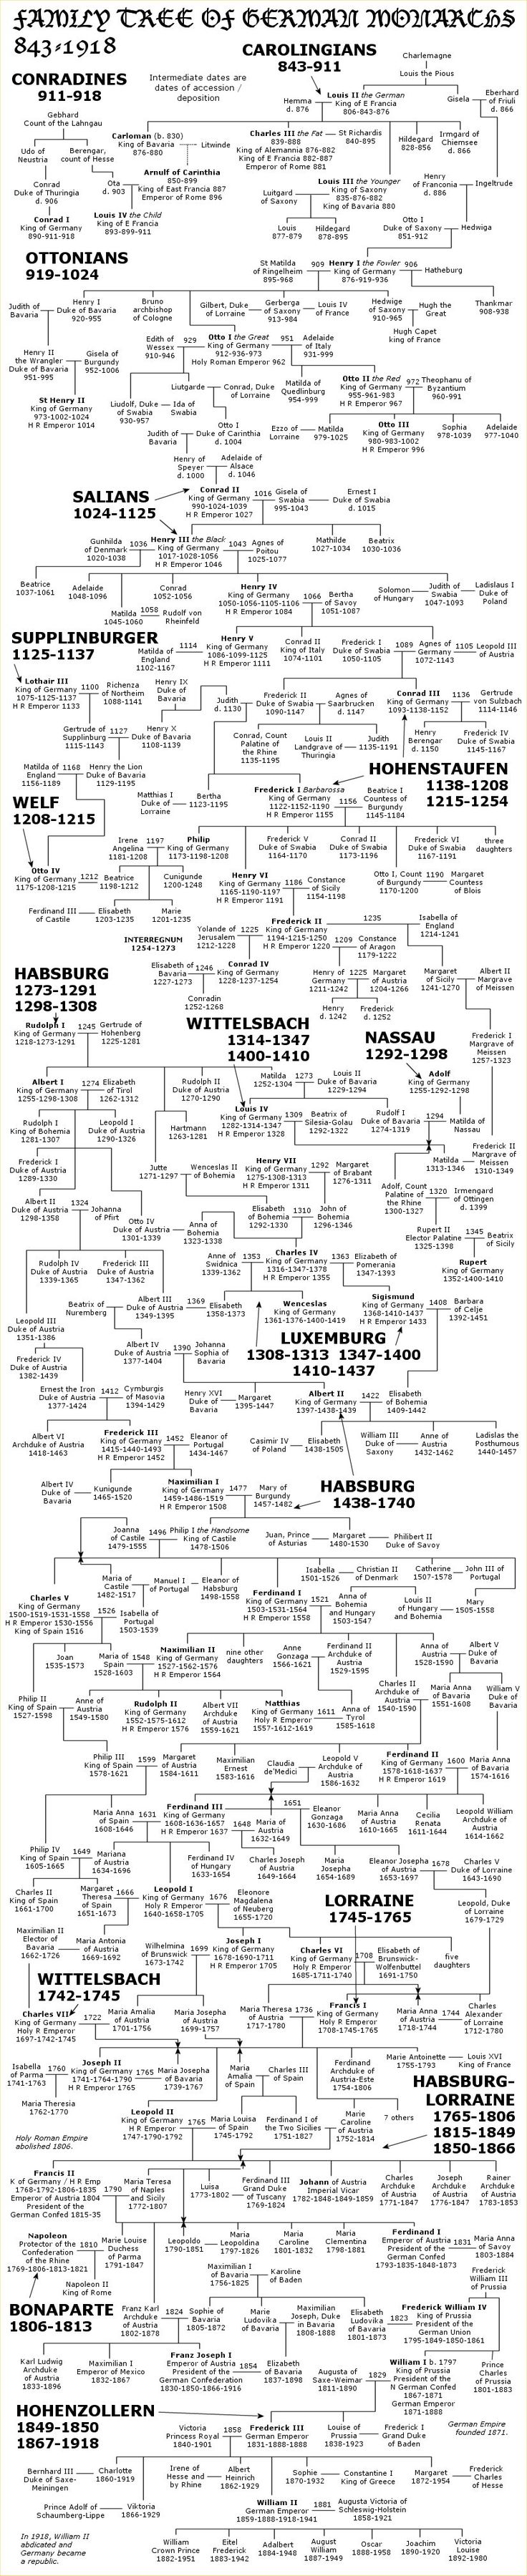 best ideas about family tree layout pedigree german monarch family tree would you like to know your family tree house